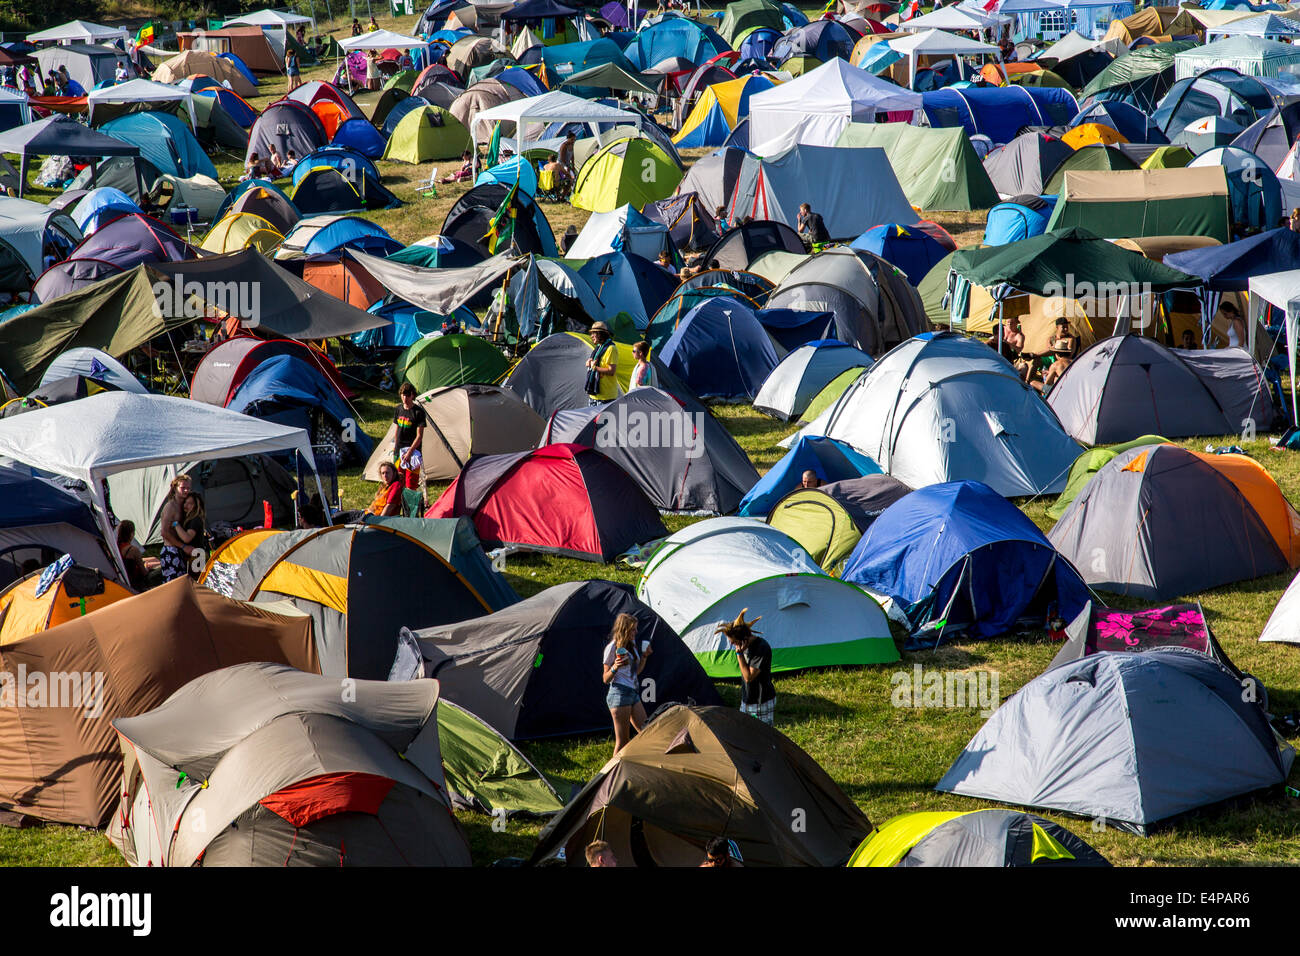 Many tents on a lawn, at an open air festival, camping, - Stock Image